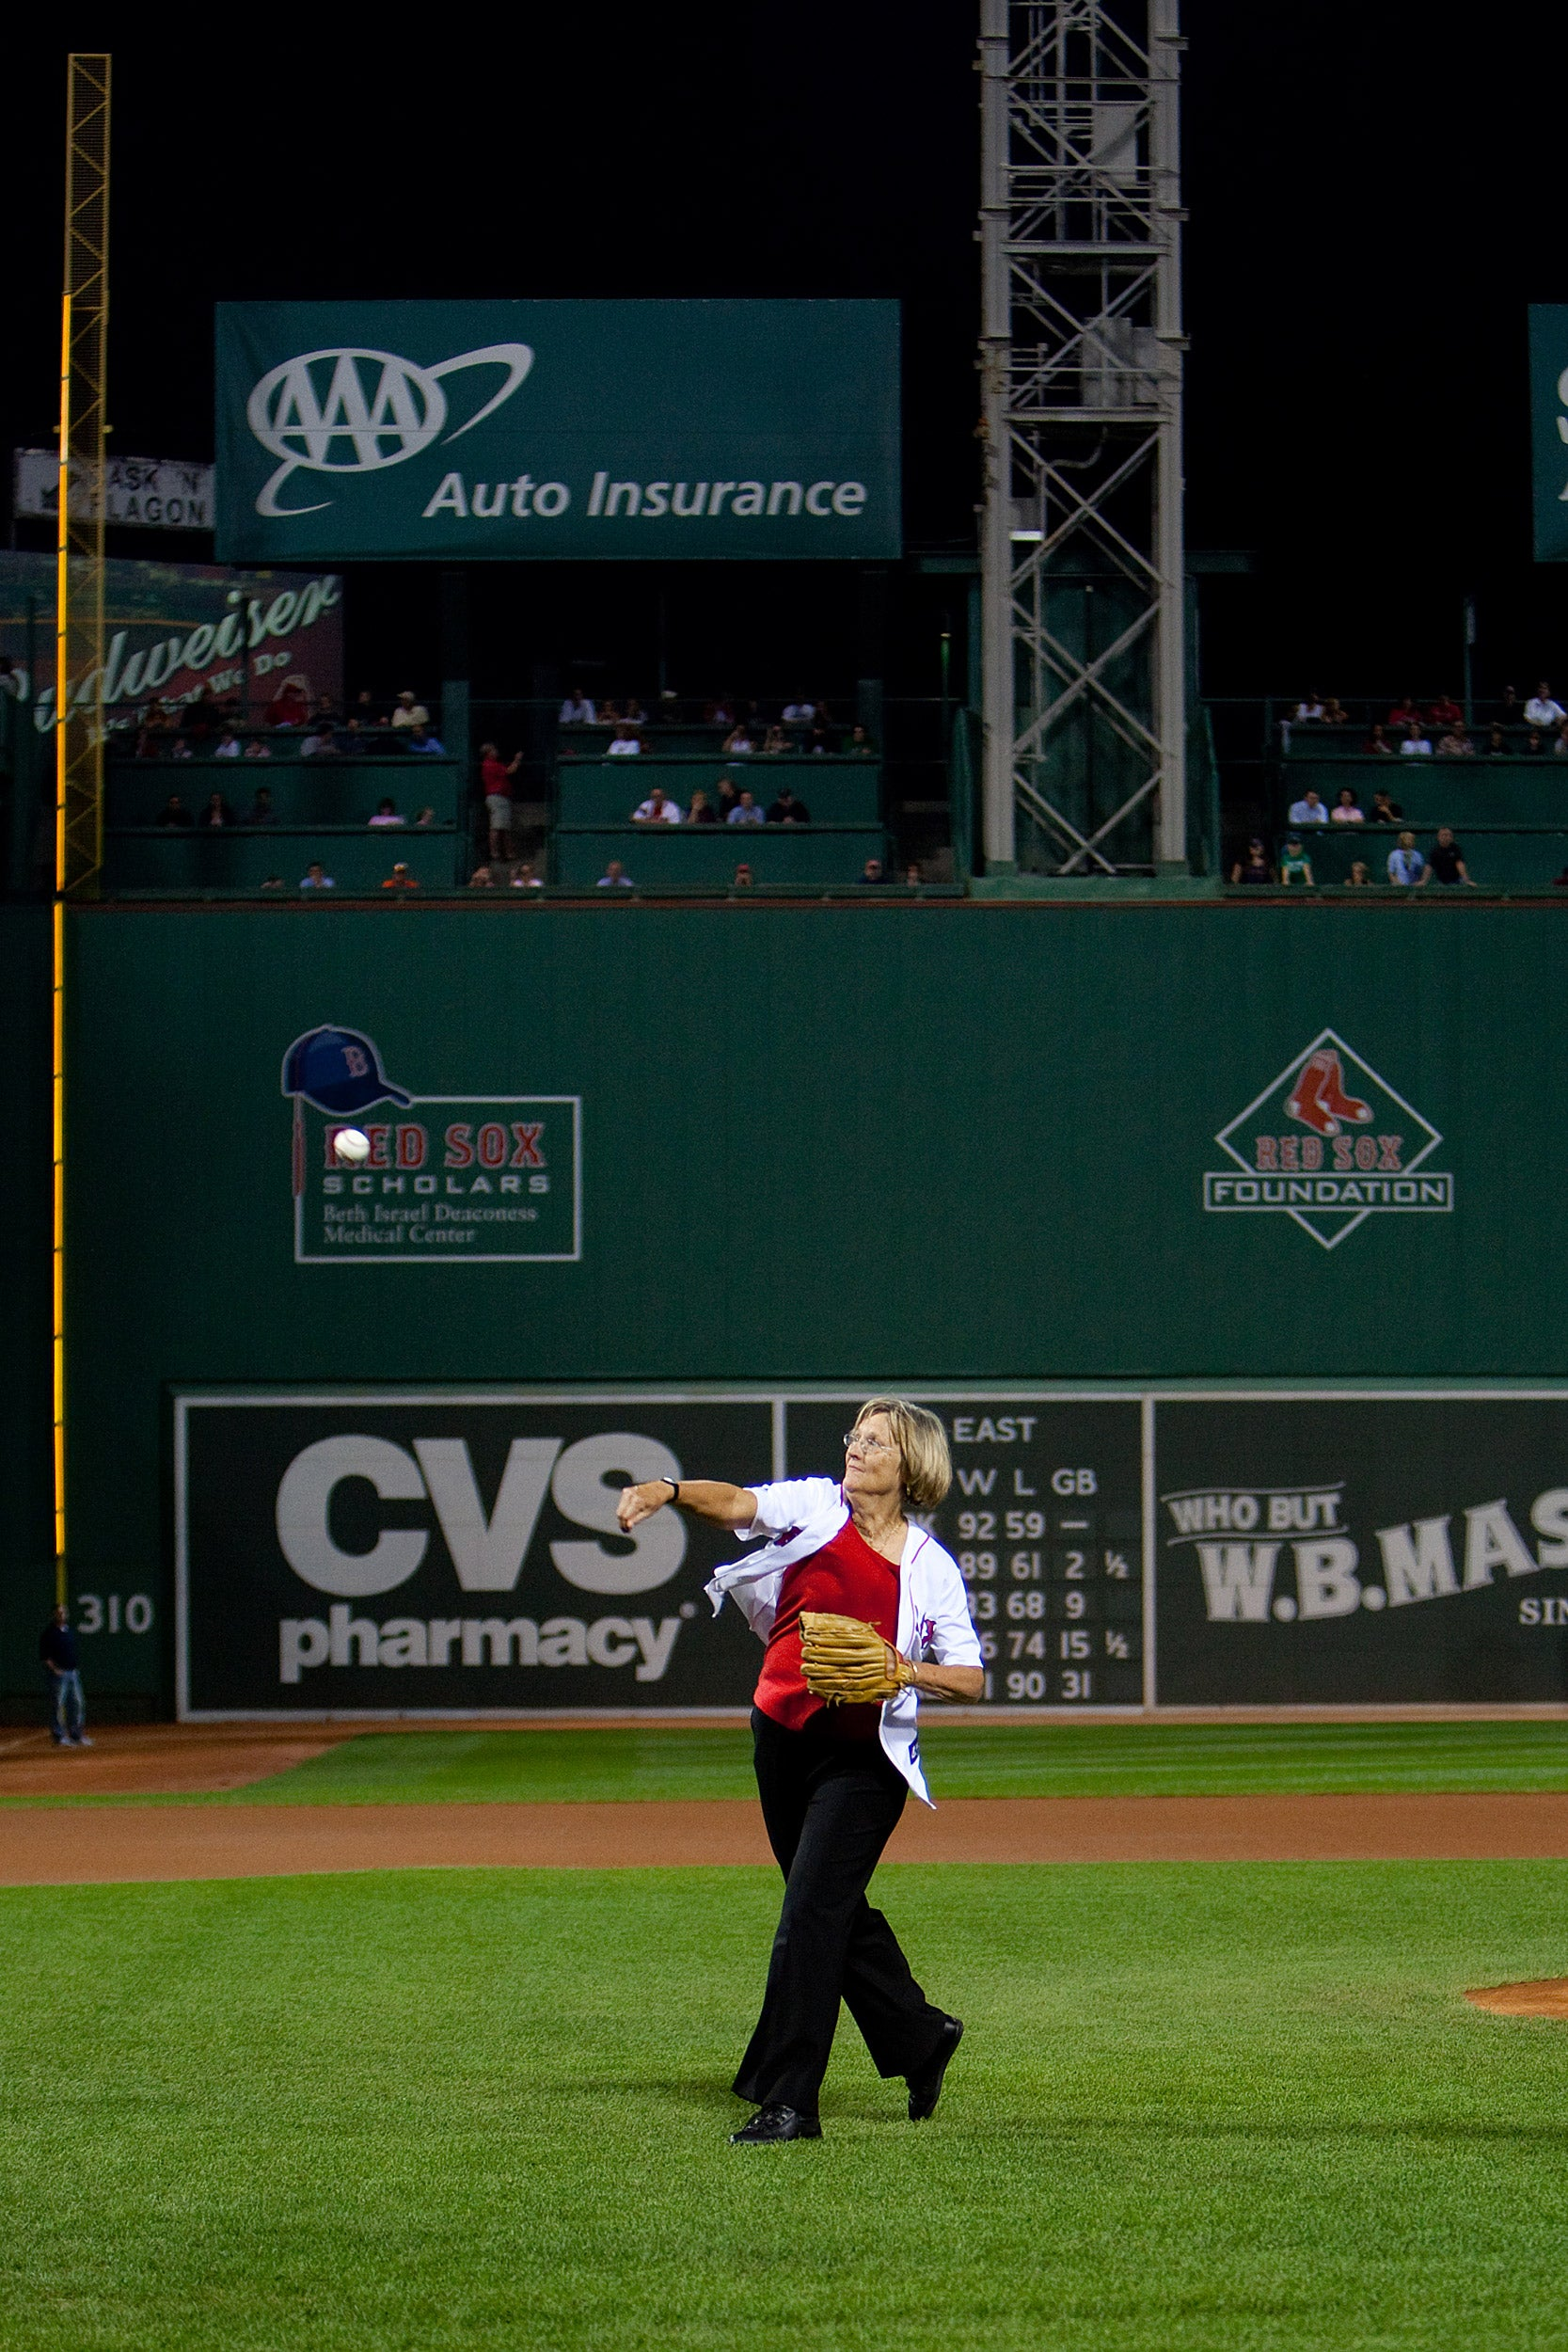 Harvard President Drew Faust throws first pitch at Fenway.